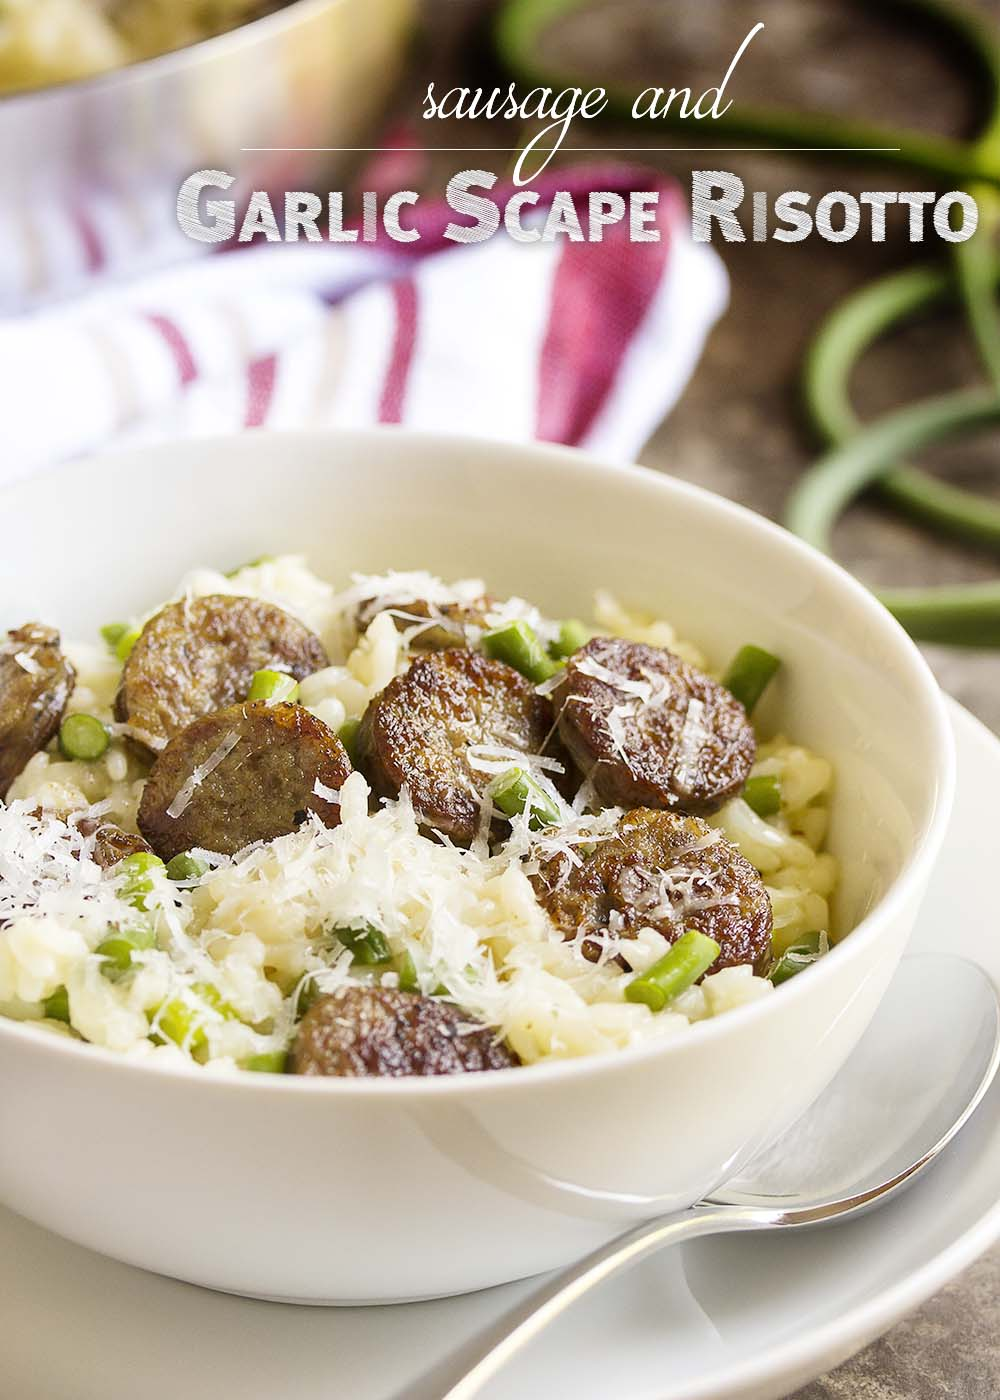 Sausage and Garlic Scape Risotto - Love risotto? Want to try garlic scapes? Garlic scapes have a great, mellow, garlic flavor when they are sauteed as in this risotto with garlic scapes and sausage. | justalittlebitofbacon.com